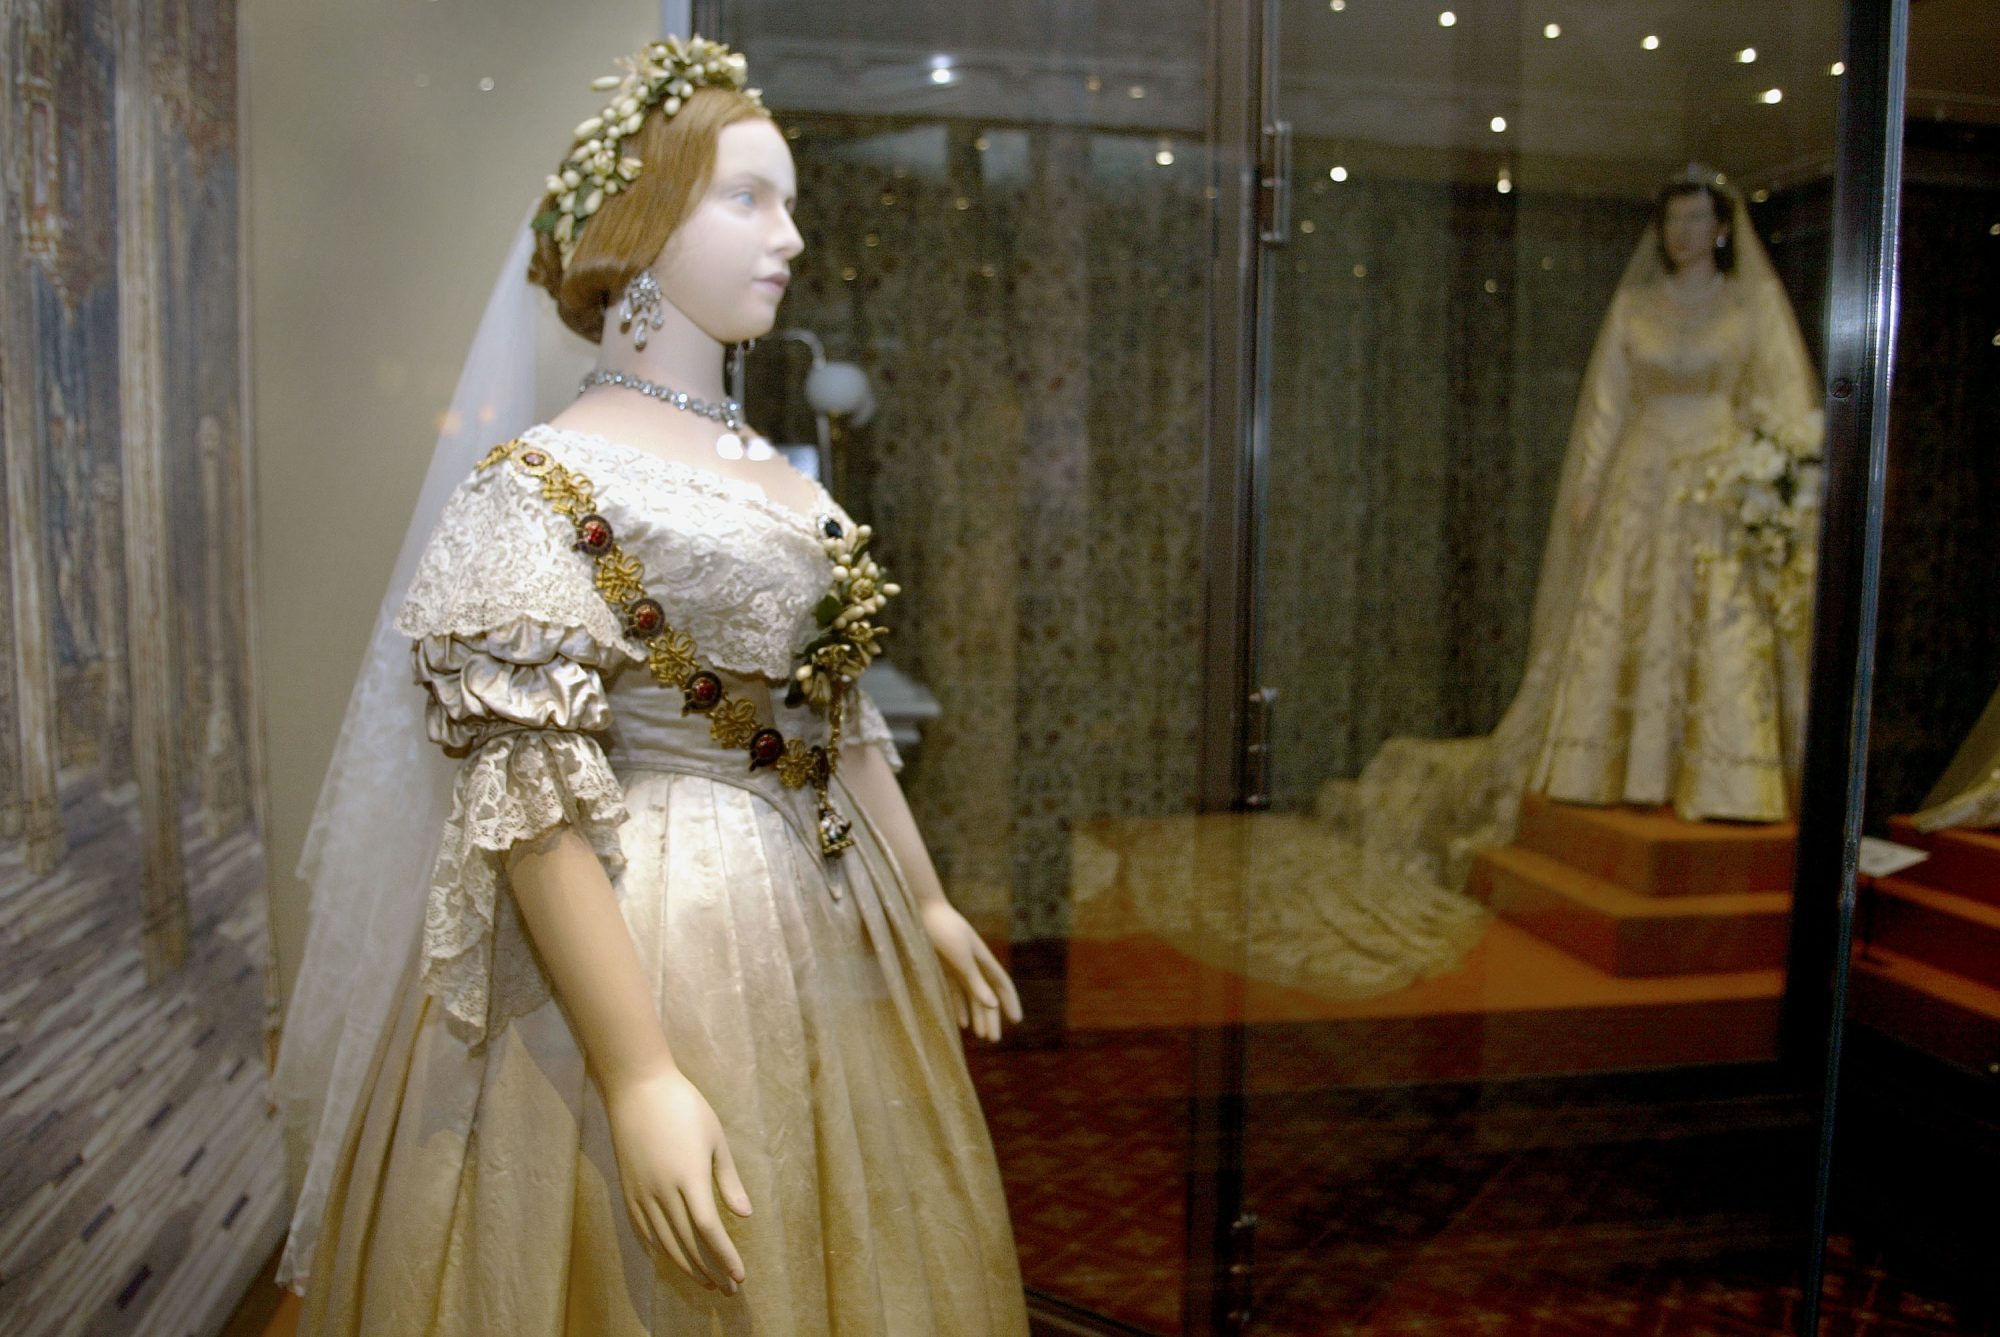 Queen Victoria's Wedding Dress on Display